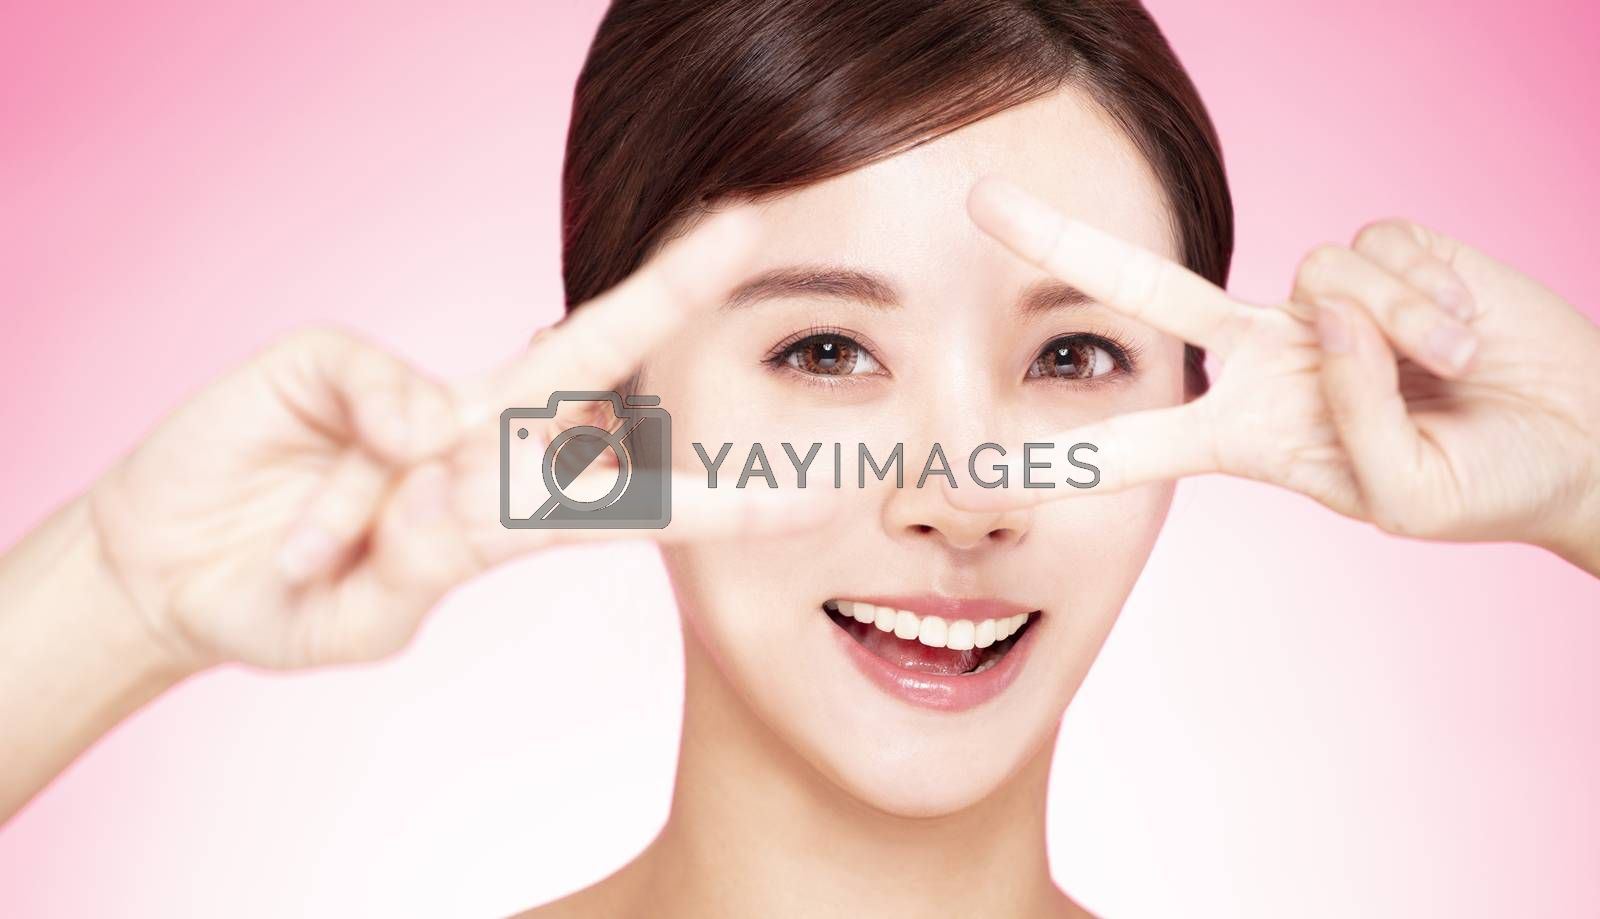 closeup cute lovely  girl face and hand with looking gesture by tomwang